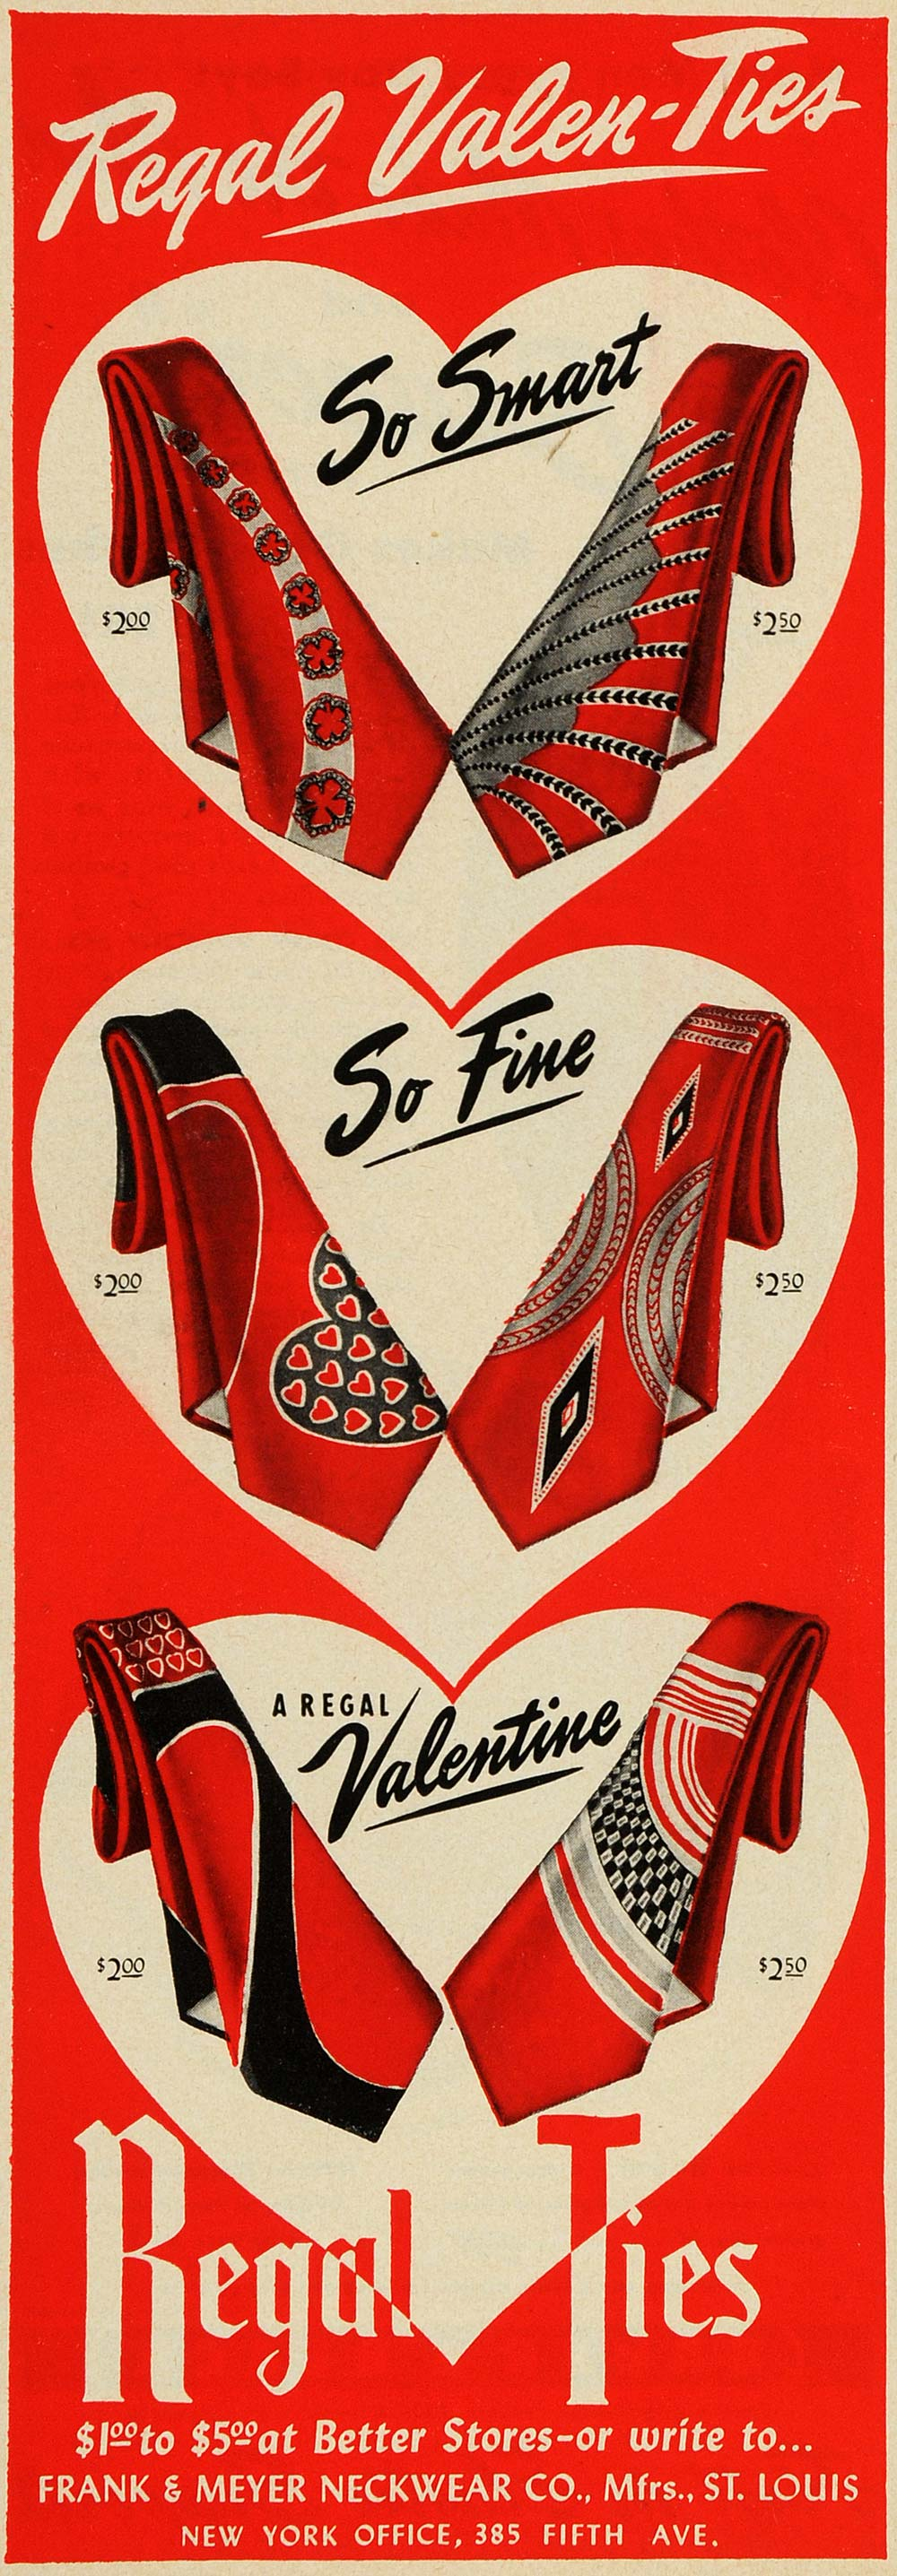 1949 Ad Regal Valentines Day Ties Frank Meyer Neckwear - ORIGINAL ESQ4